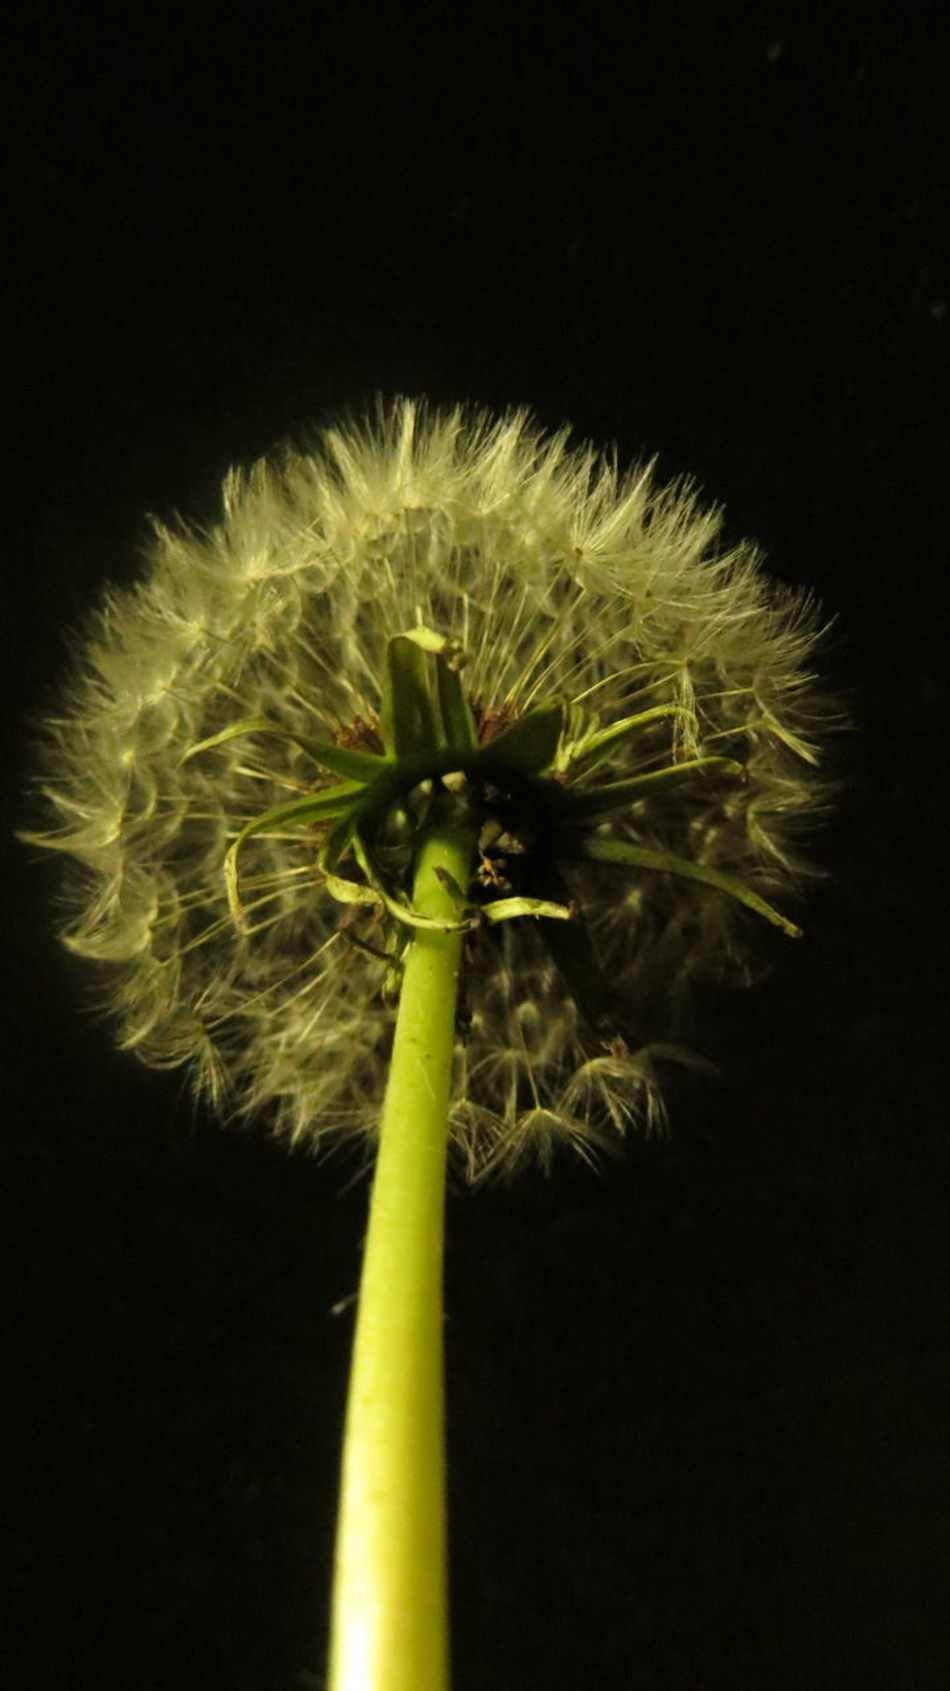 Beauty In Nature Black Background Close-up Dandelion Seed Day Flower Flower Head Fragility Freshness Growth Nature No People Outdoors Plant Seed Spiky Stem